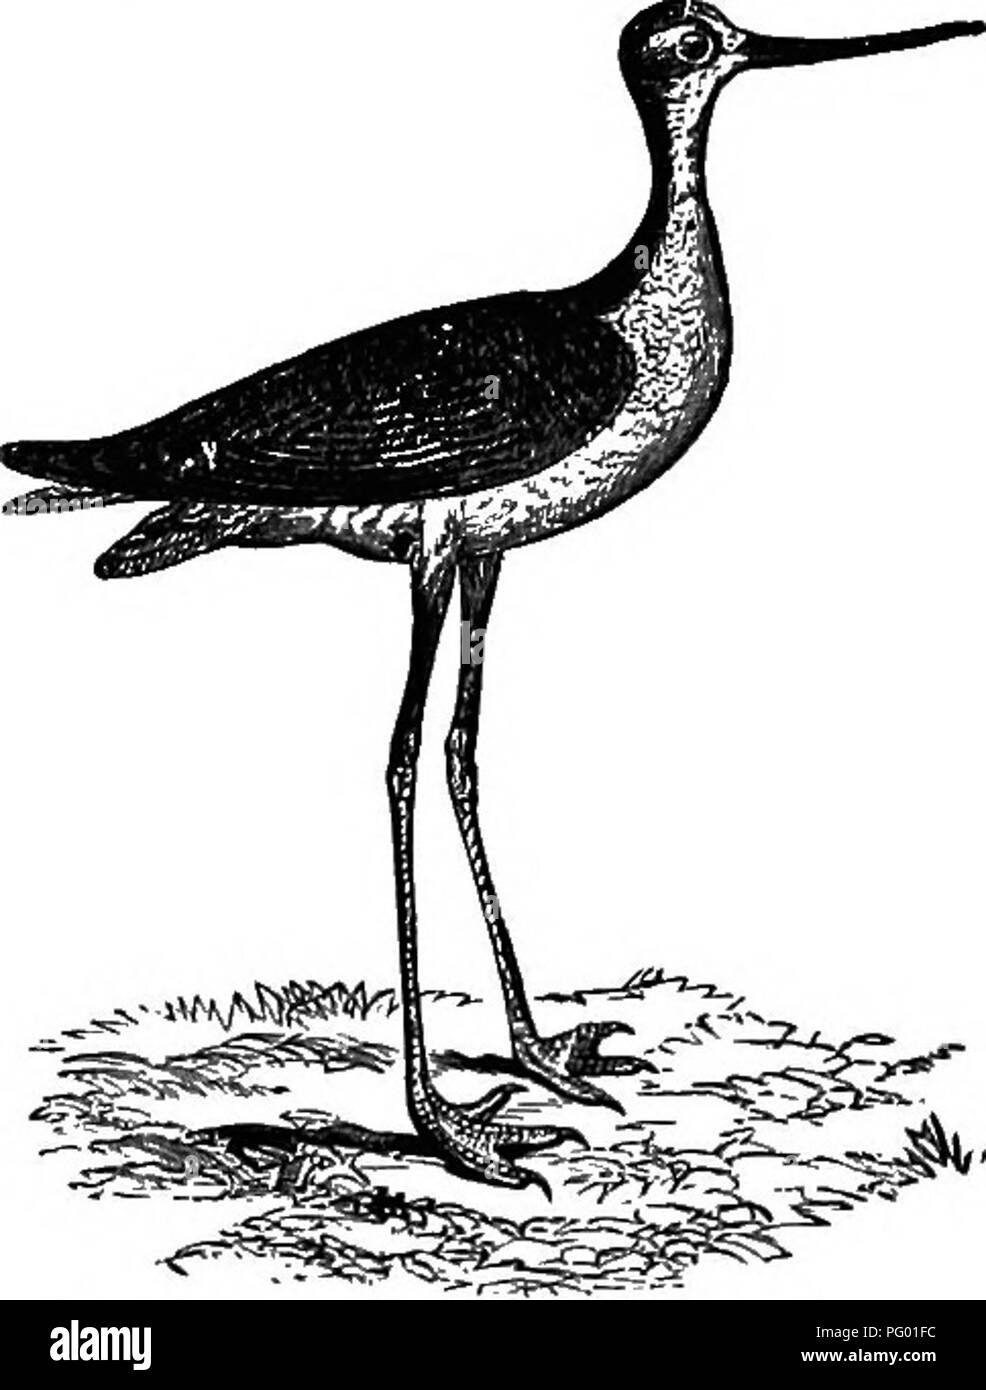 . New England bird life; being a manual of New England ornithology: rev.and ed. from the manuscript of Winfrid A. Stearns . Birds. HIMANTOPUS MEXICANUS : BLACK-NECKED STILT. 183 The case of this bird, probably the longest-legged feathered biped in proportion to the size of its body, is quite similar to that of the Avocet, so far as its pres- ence in New England is concerned. It is simply a straggler, though it is known to have occurred oftener than the Avocet has been ascertained to have done — for, as we have seen, there are only three unexceptionable records in the case of the latter species - Stock Image